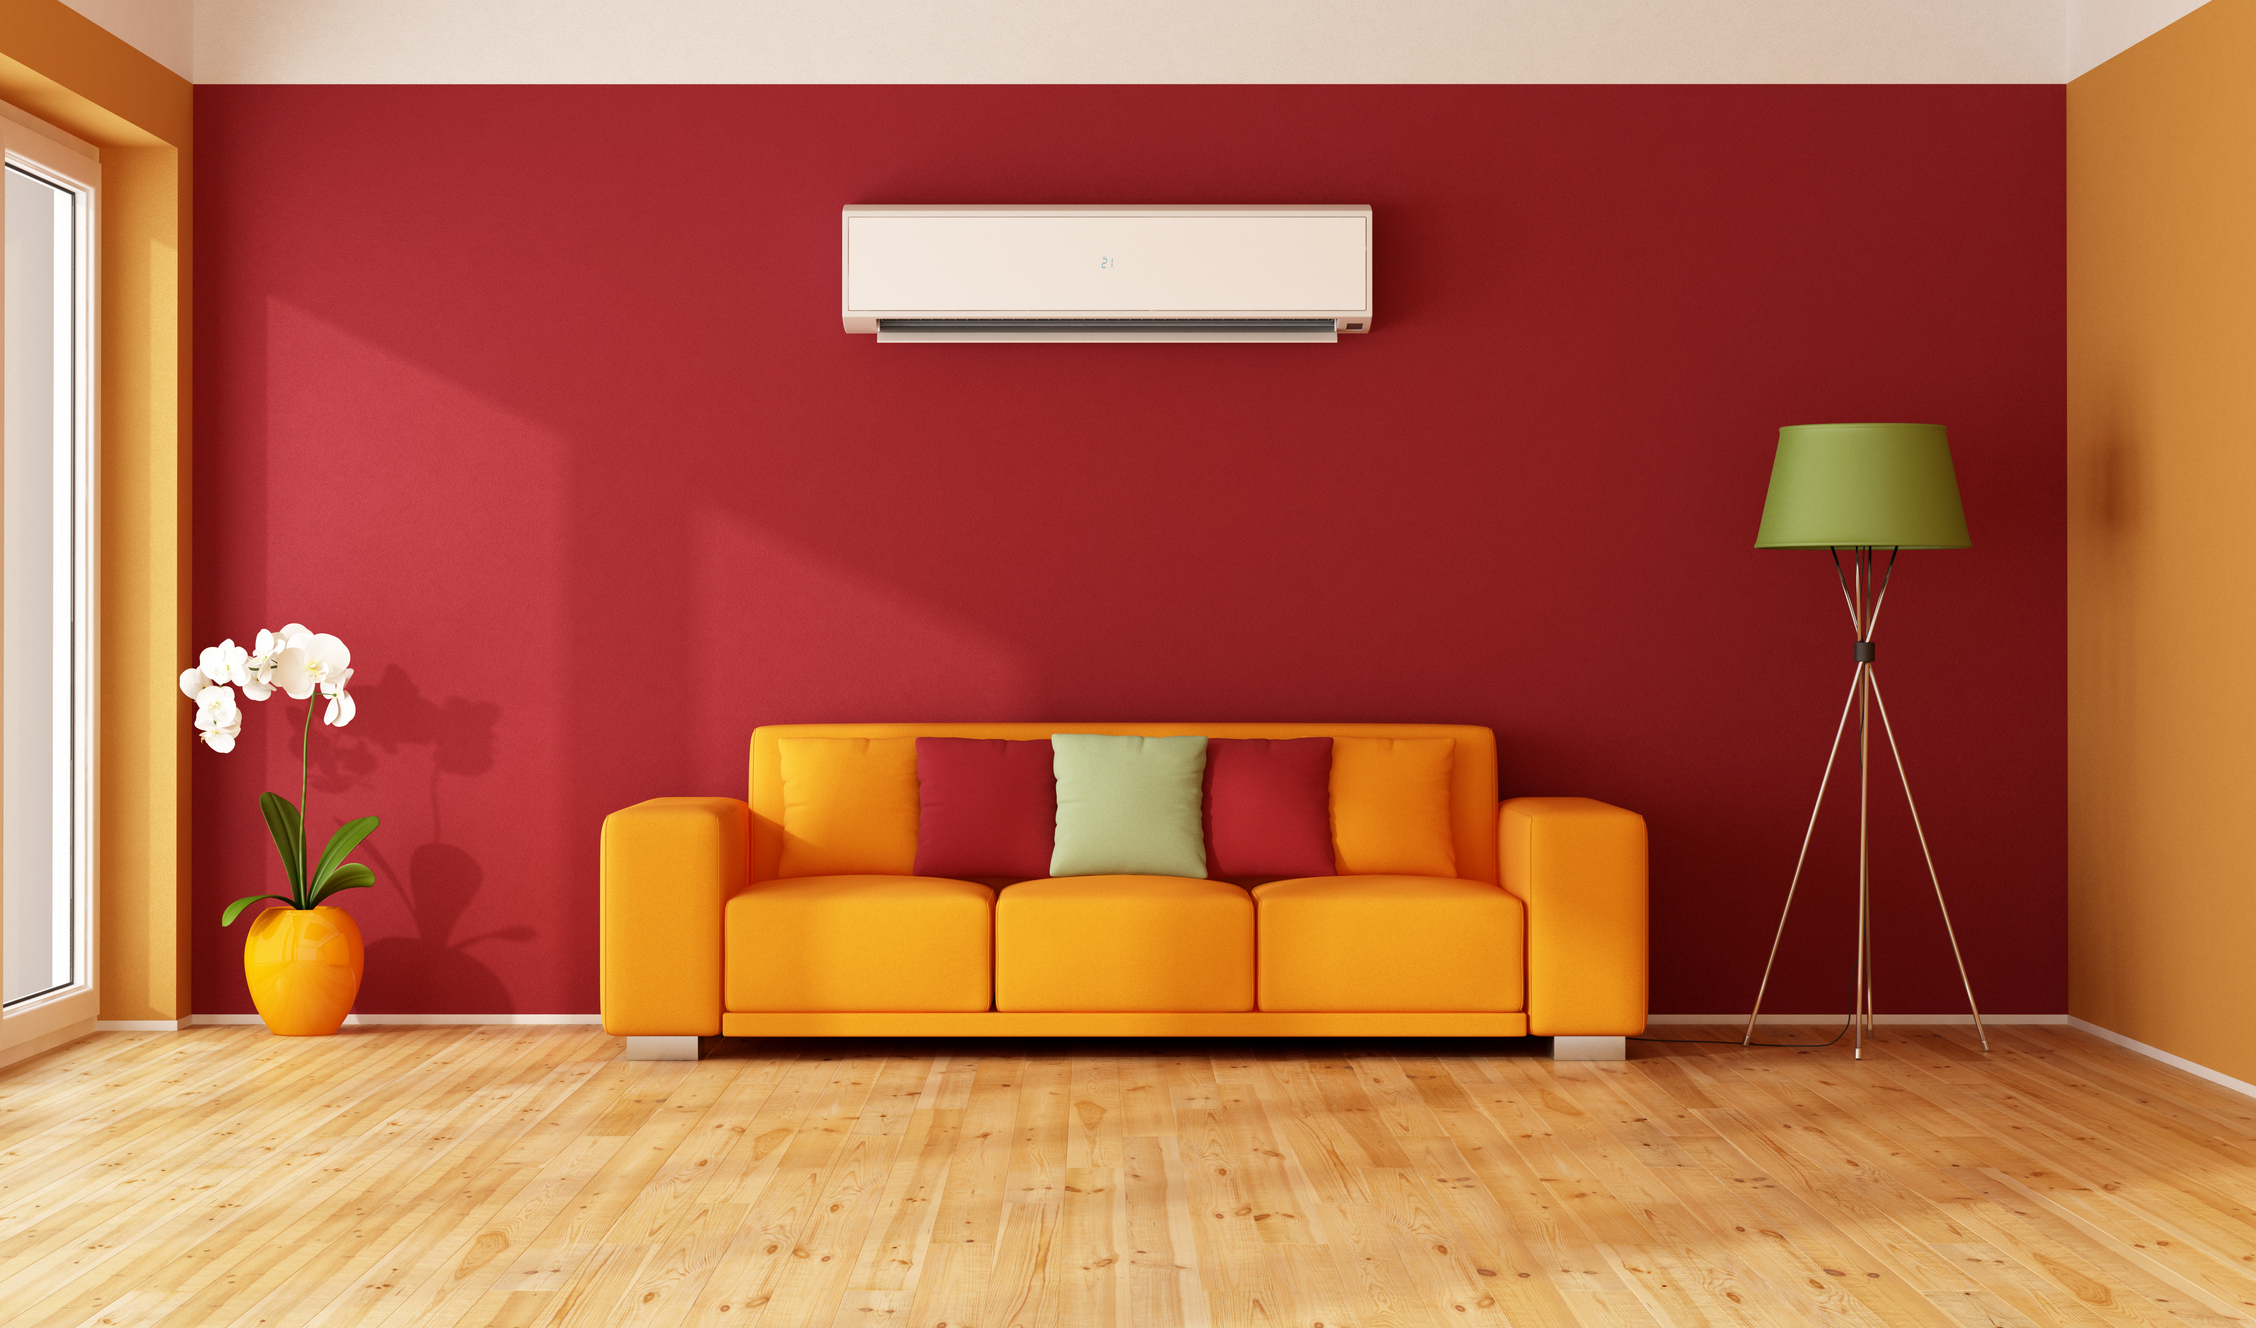 Red and orange living room with colorful sofa and air conditioner